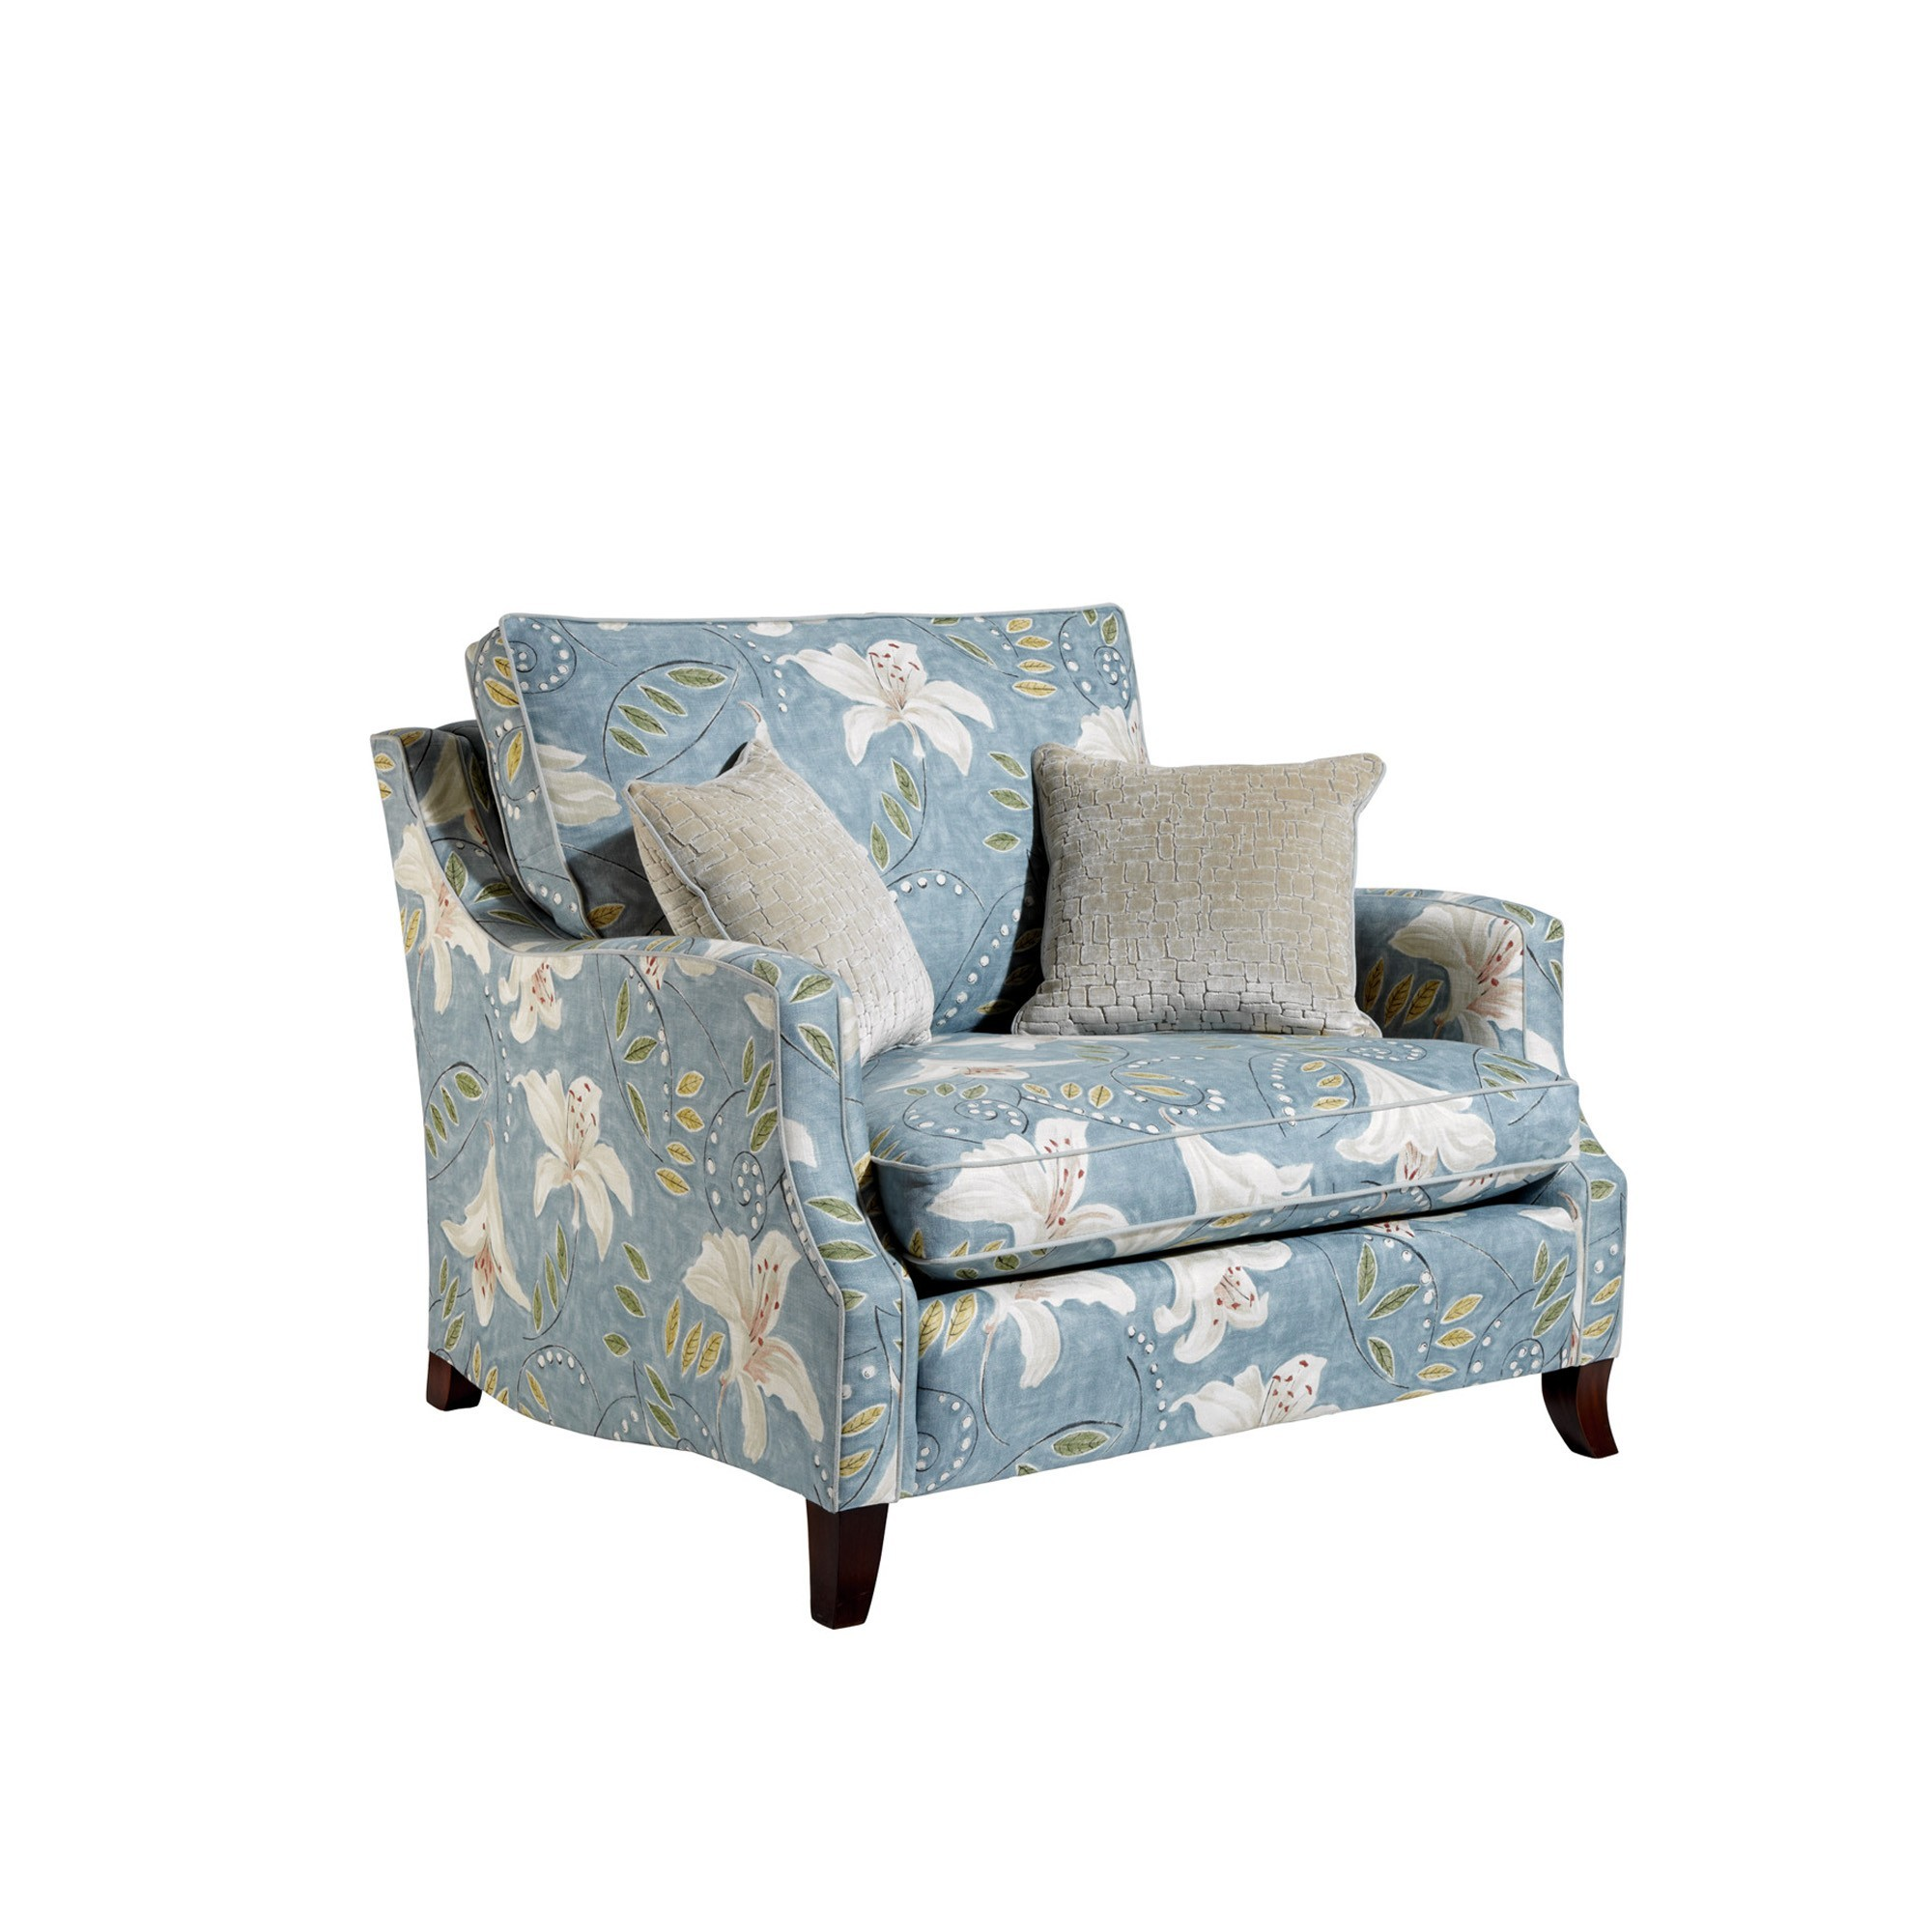 Duresta Amelia Reading Chair All Chairs Cookes Furniture